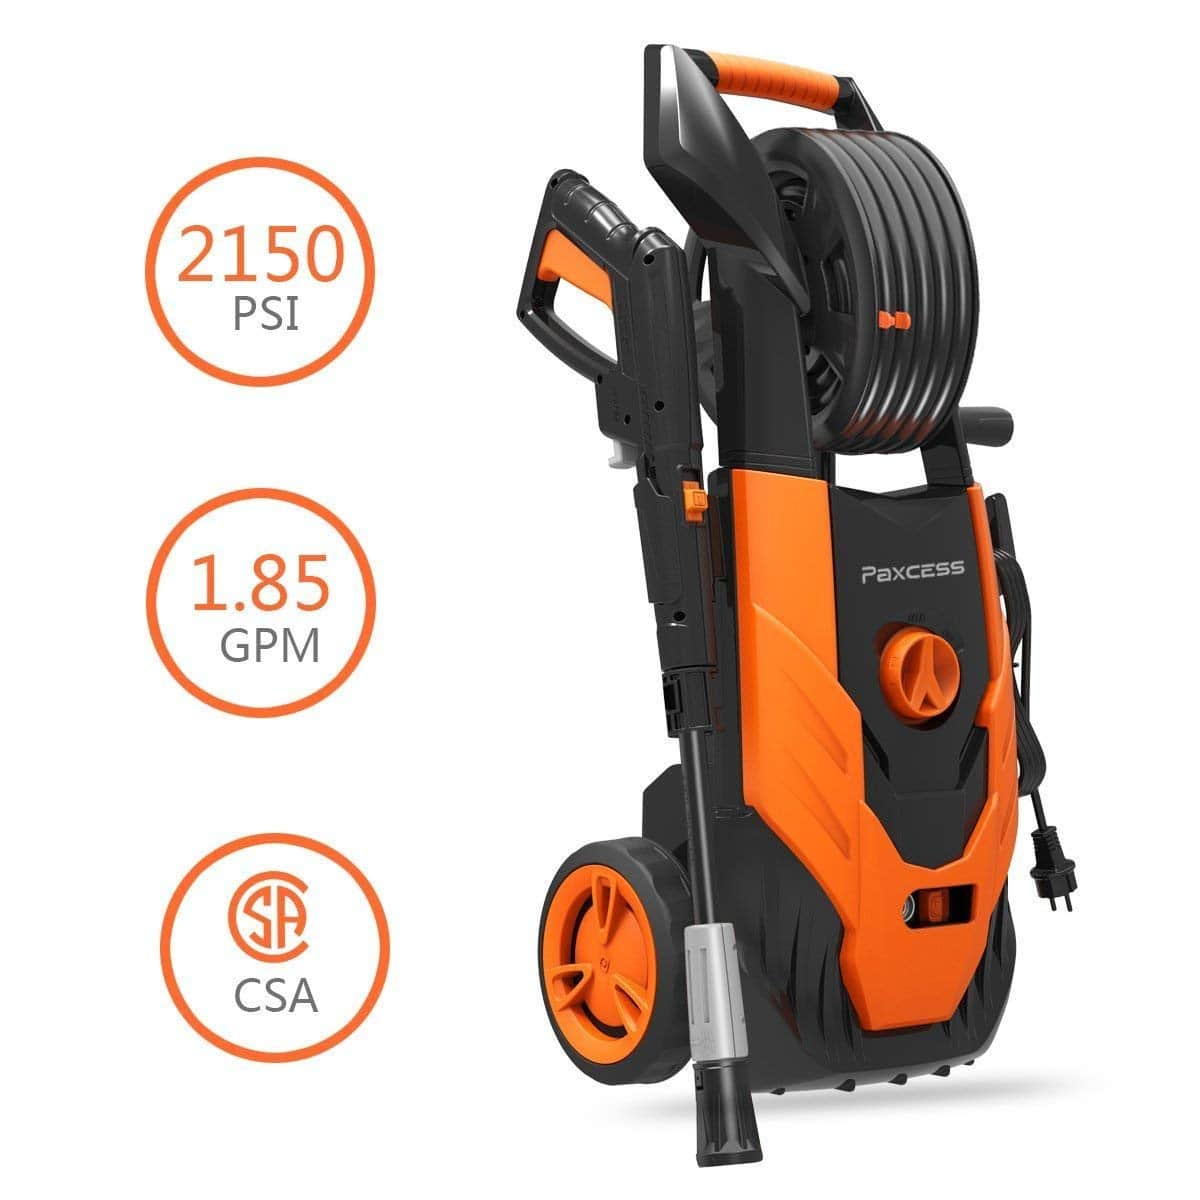 PAXCESS Electric Pressure Washer, 2150 PSI Power Washer with Spray Gun | $95.97 @Amazon